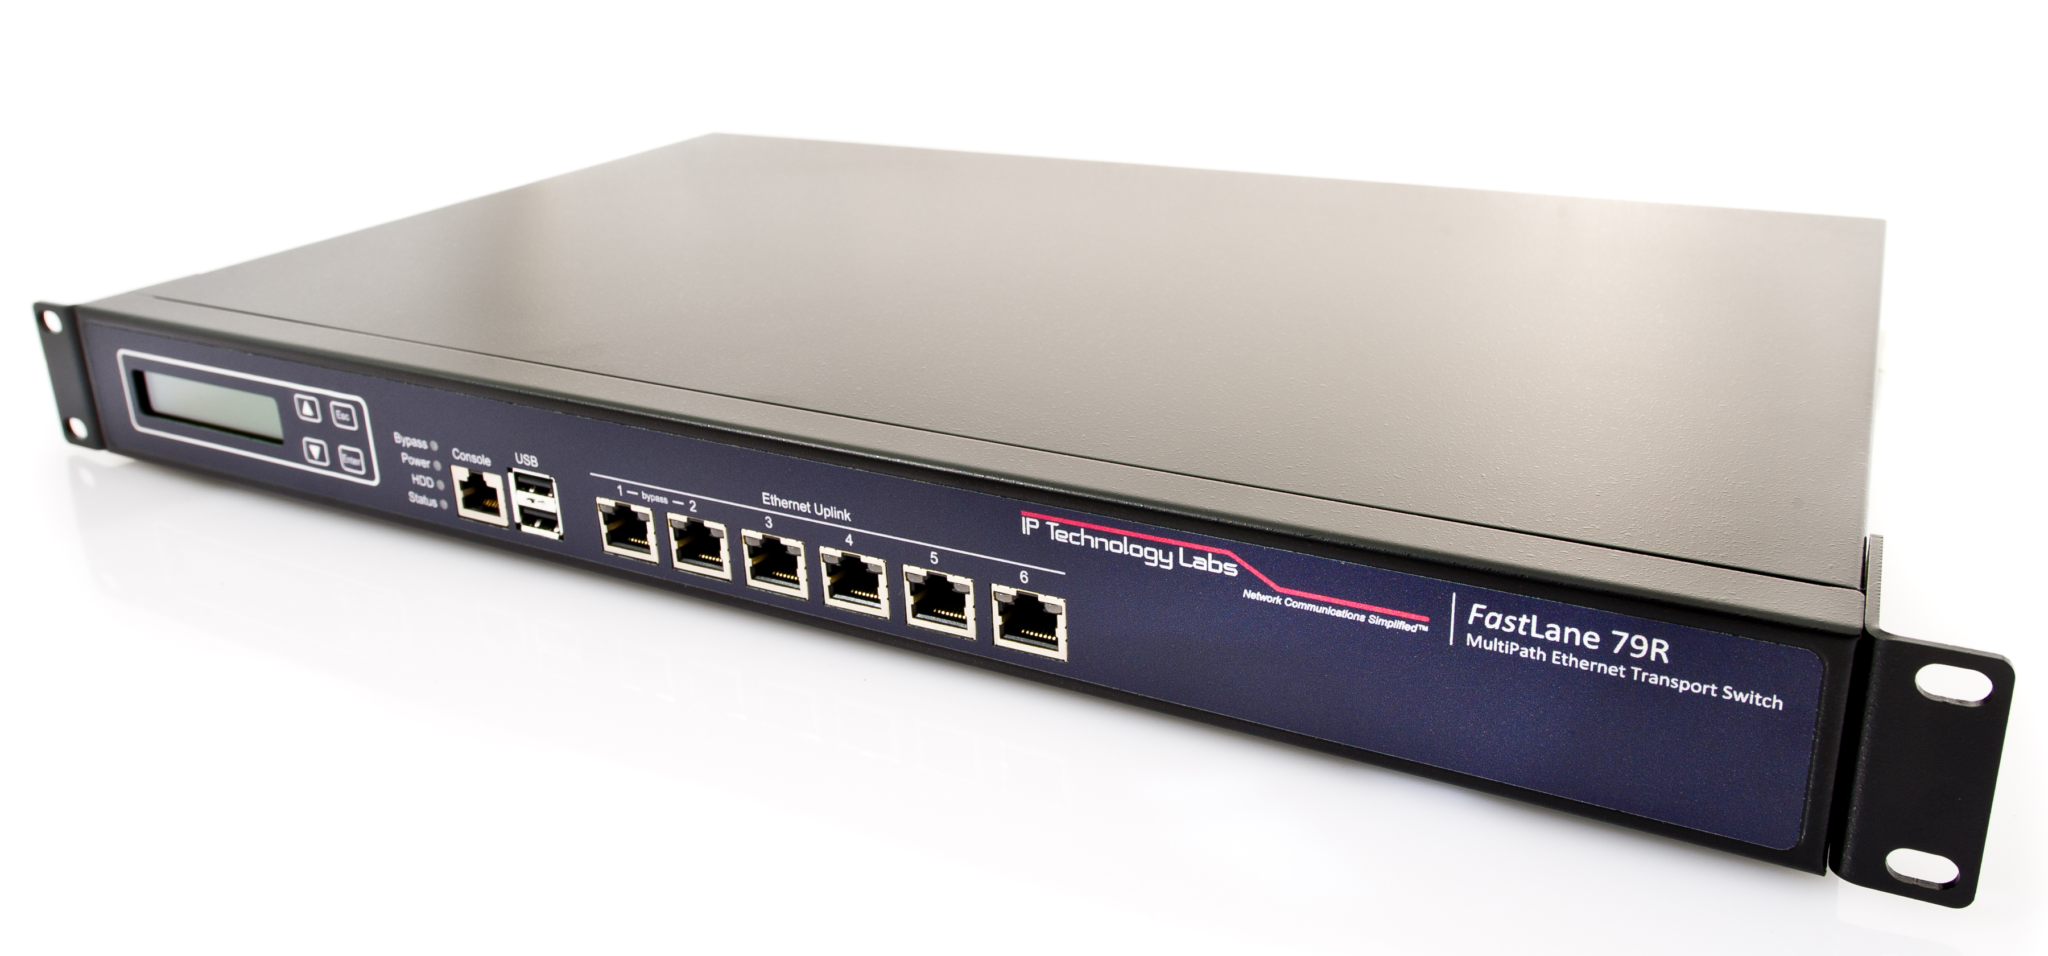 Model 79R Series Secure Remote Access Appliance Hi-Performance Server with Field Expandable Connections Redundancy. slat